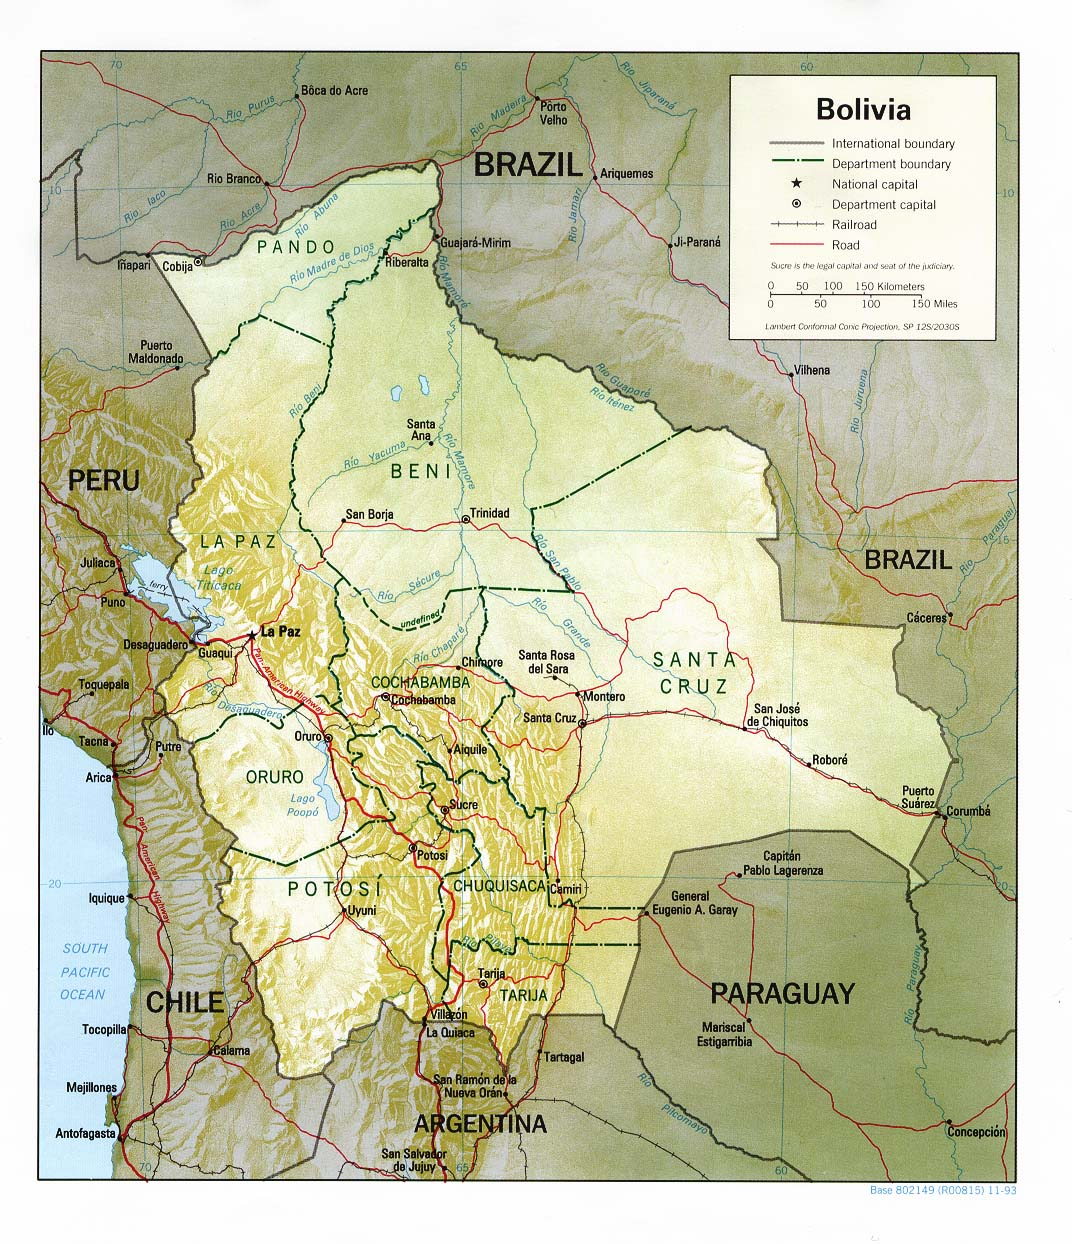 topographic map of bolivia Bolivia Maps Perry Castaneda Map Collection Ut Library Online